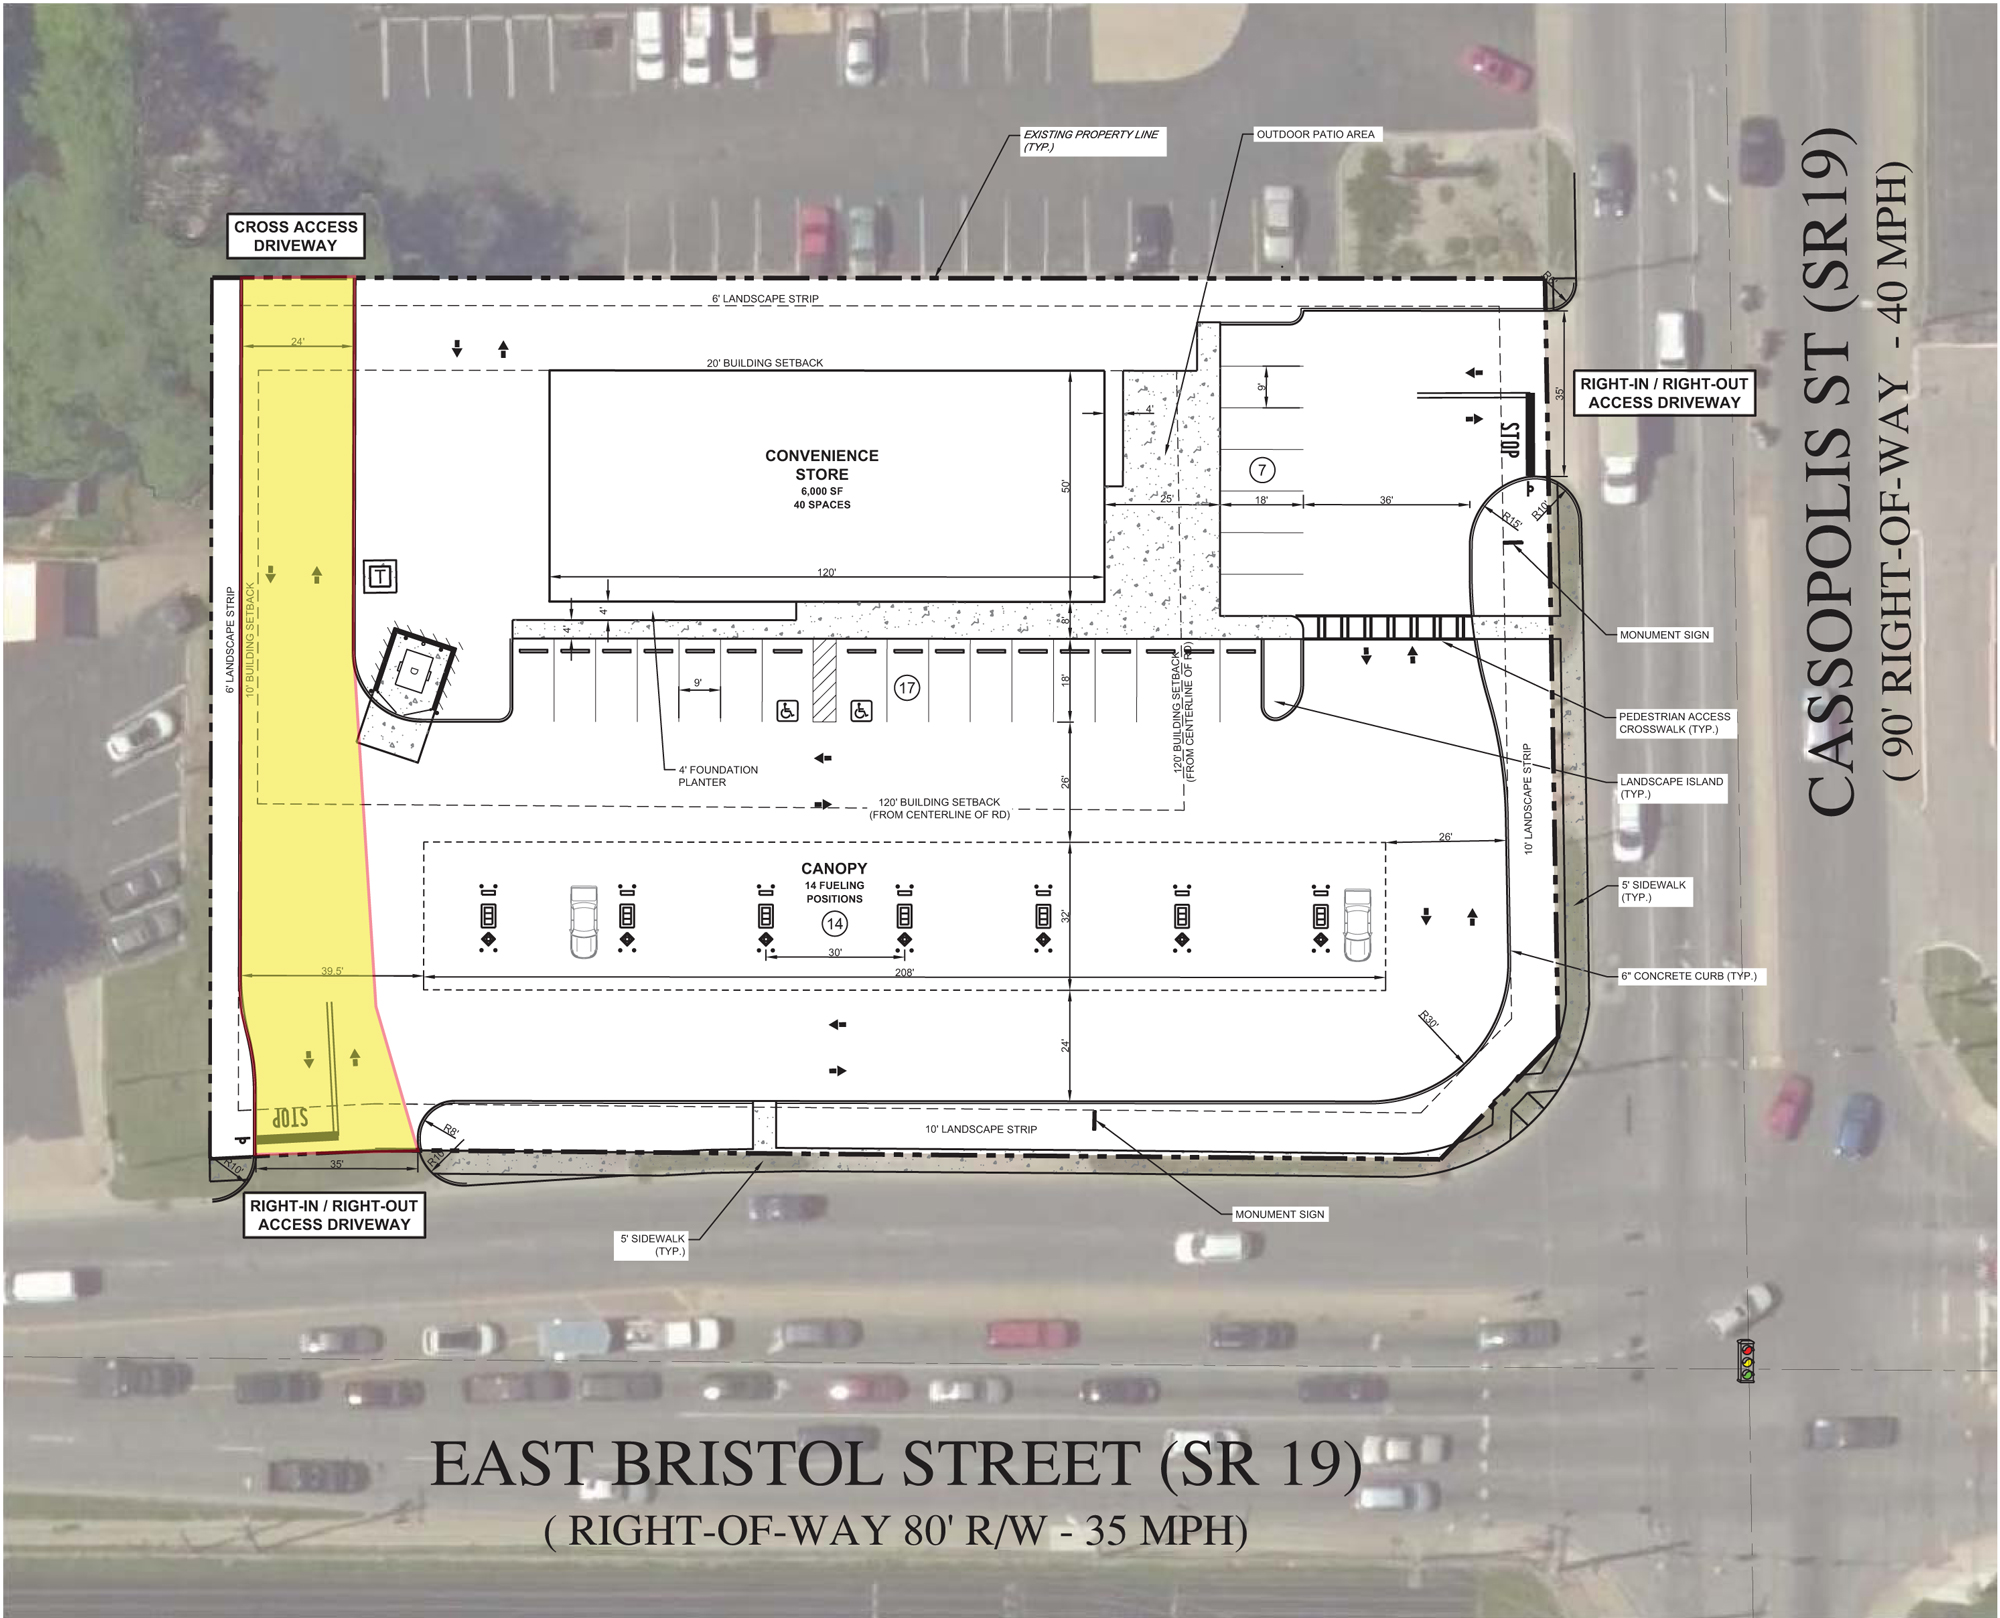 Possible site plan for convenience store located on site.